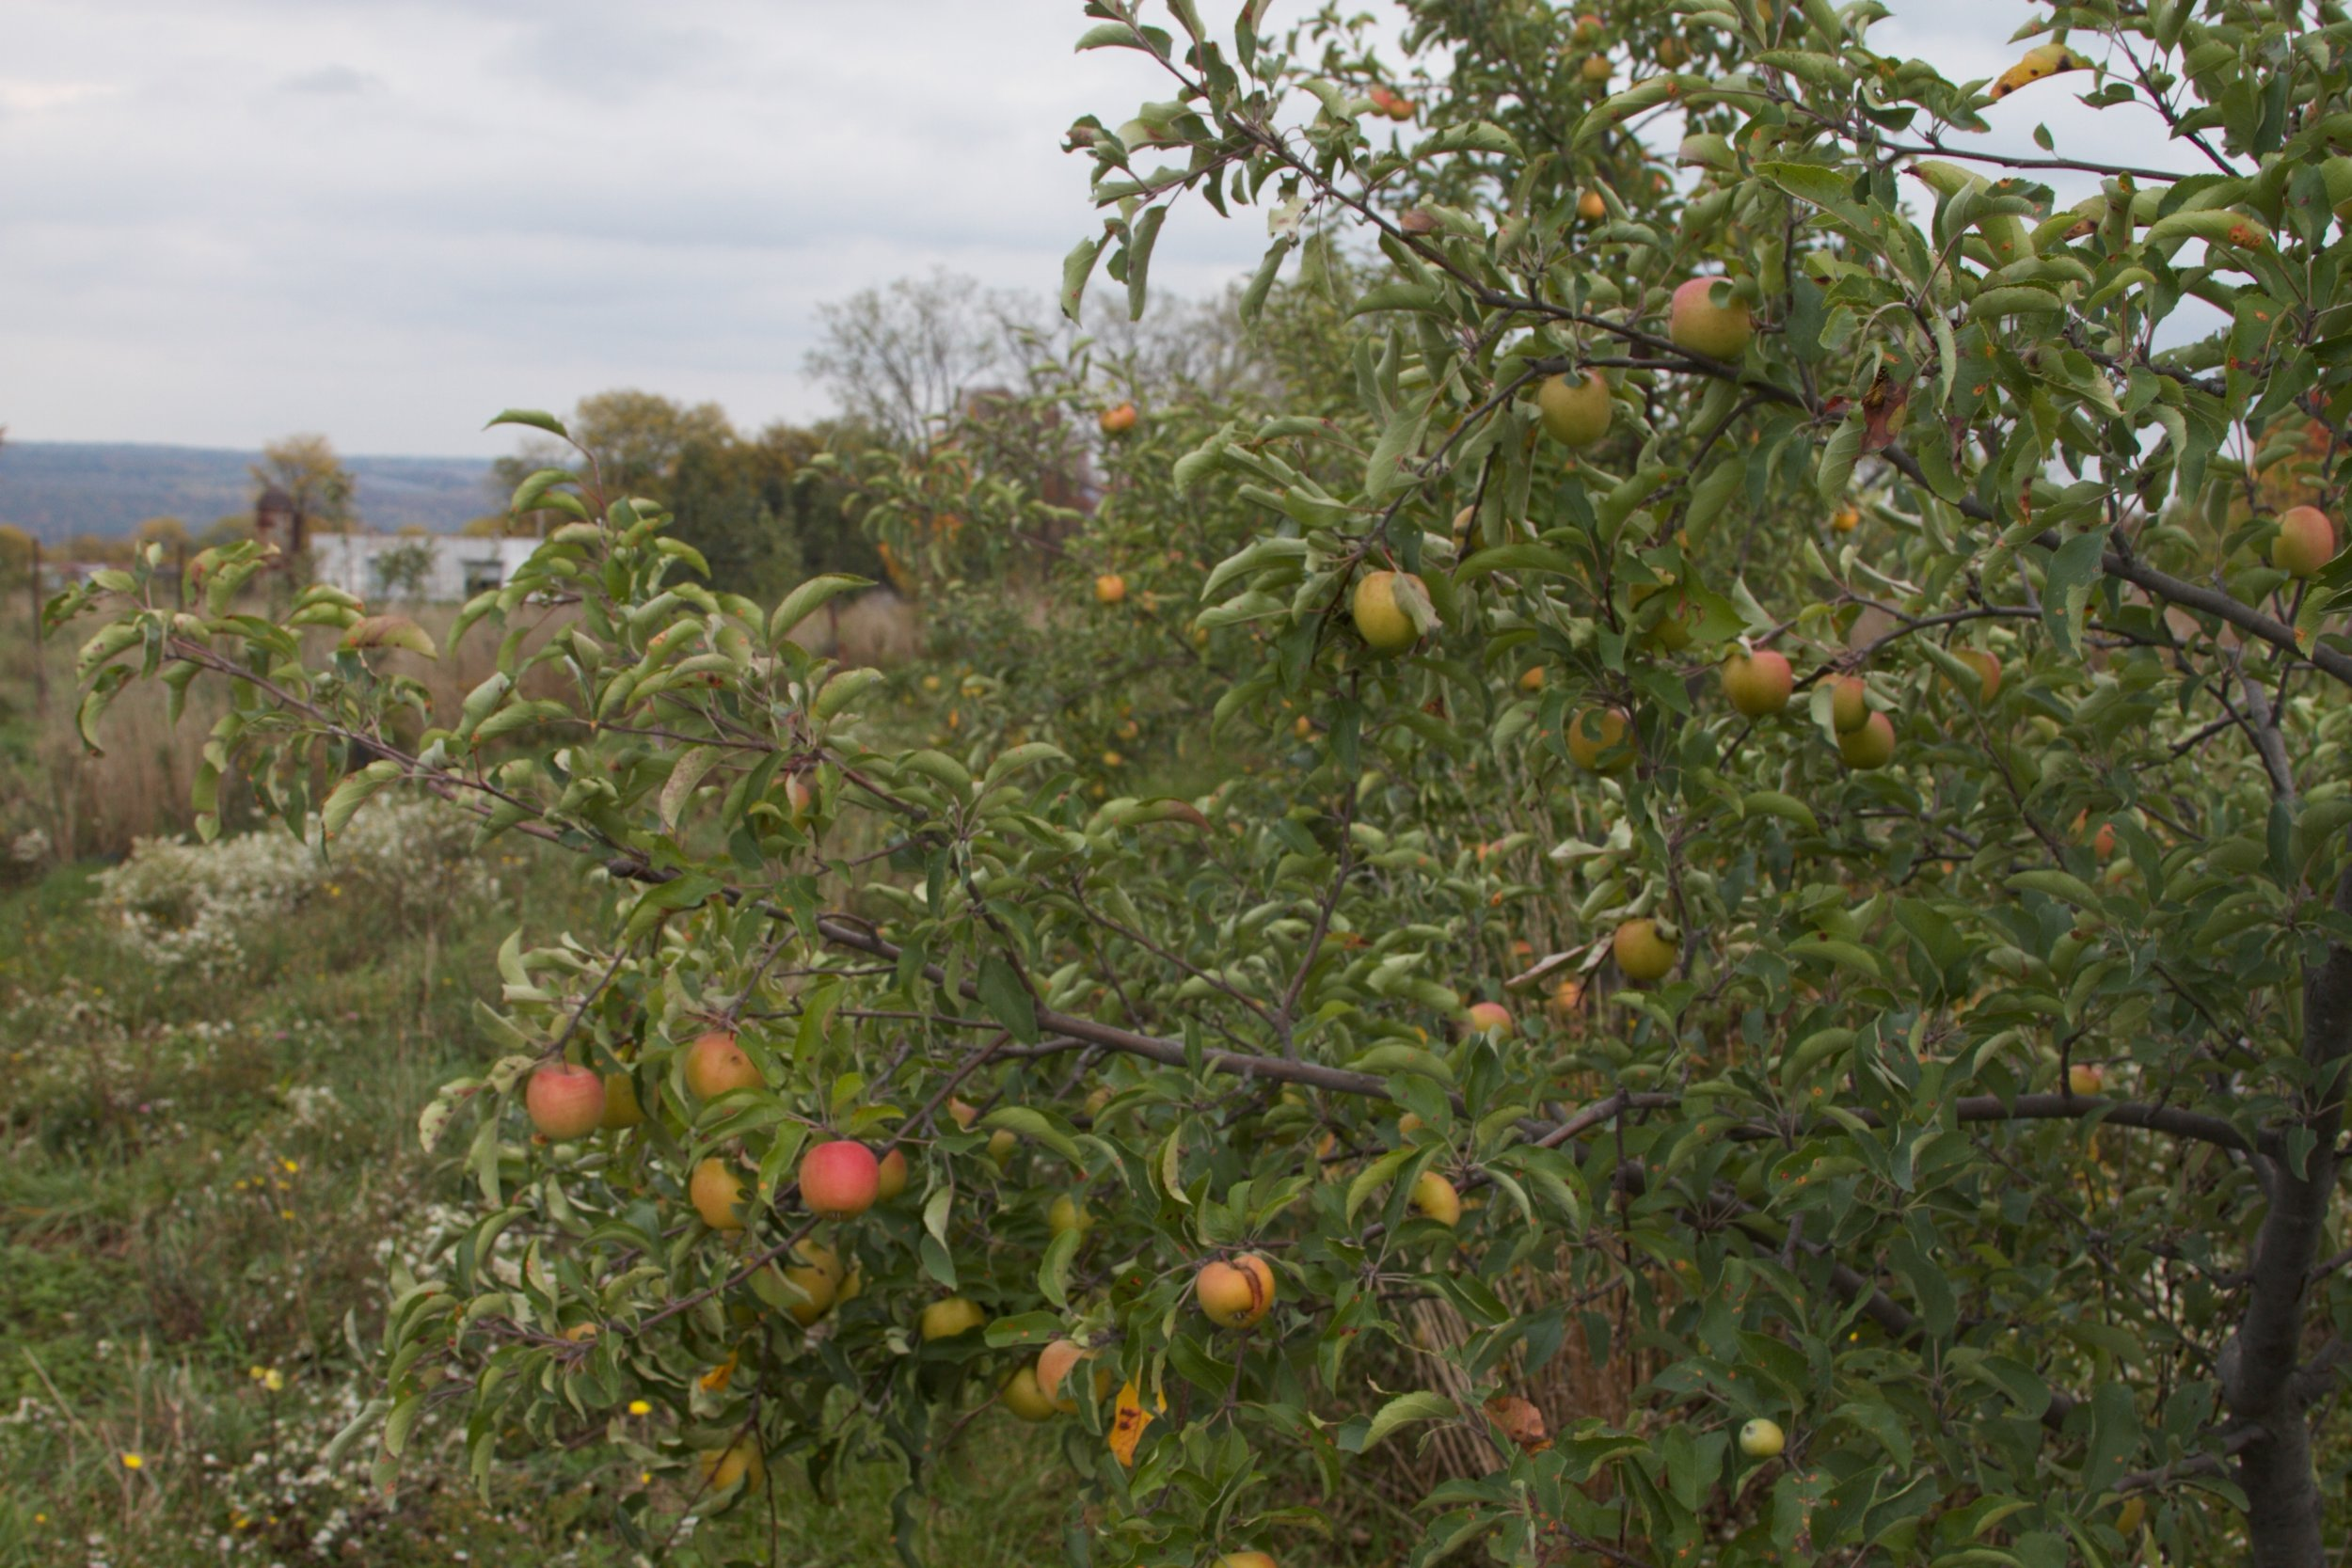 Apple trees need not be heavily sprayed to be productive. Cider-variety apples at Good Life Farm abound.